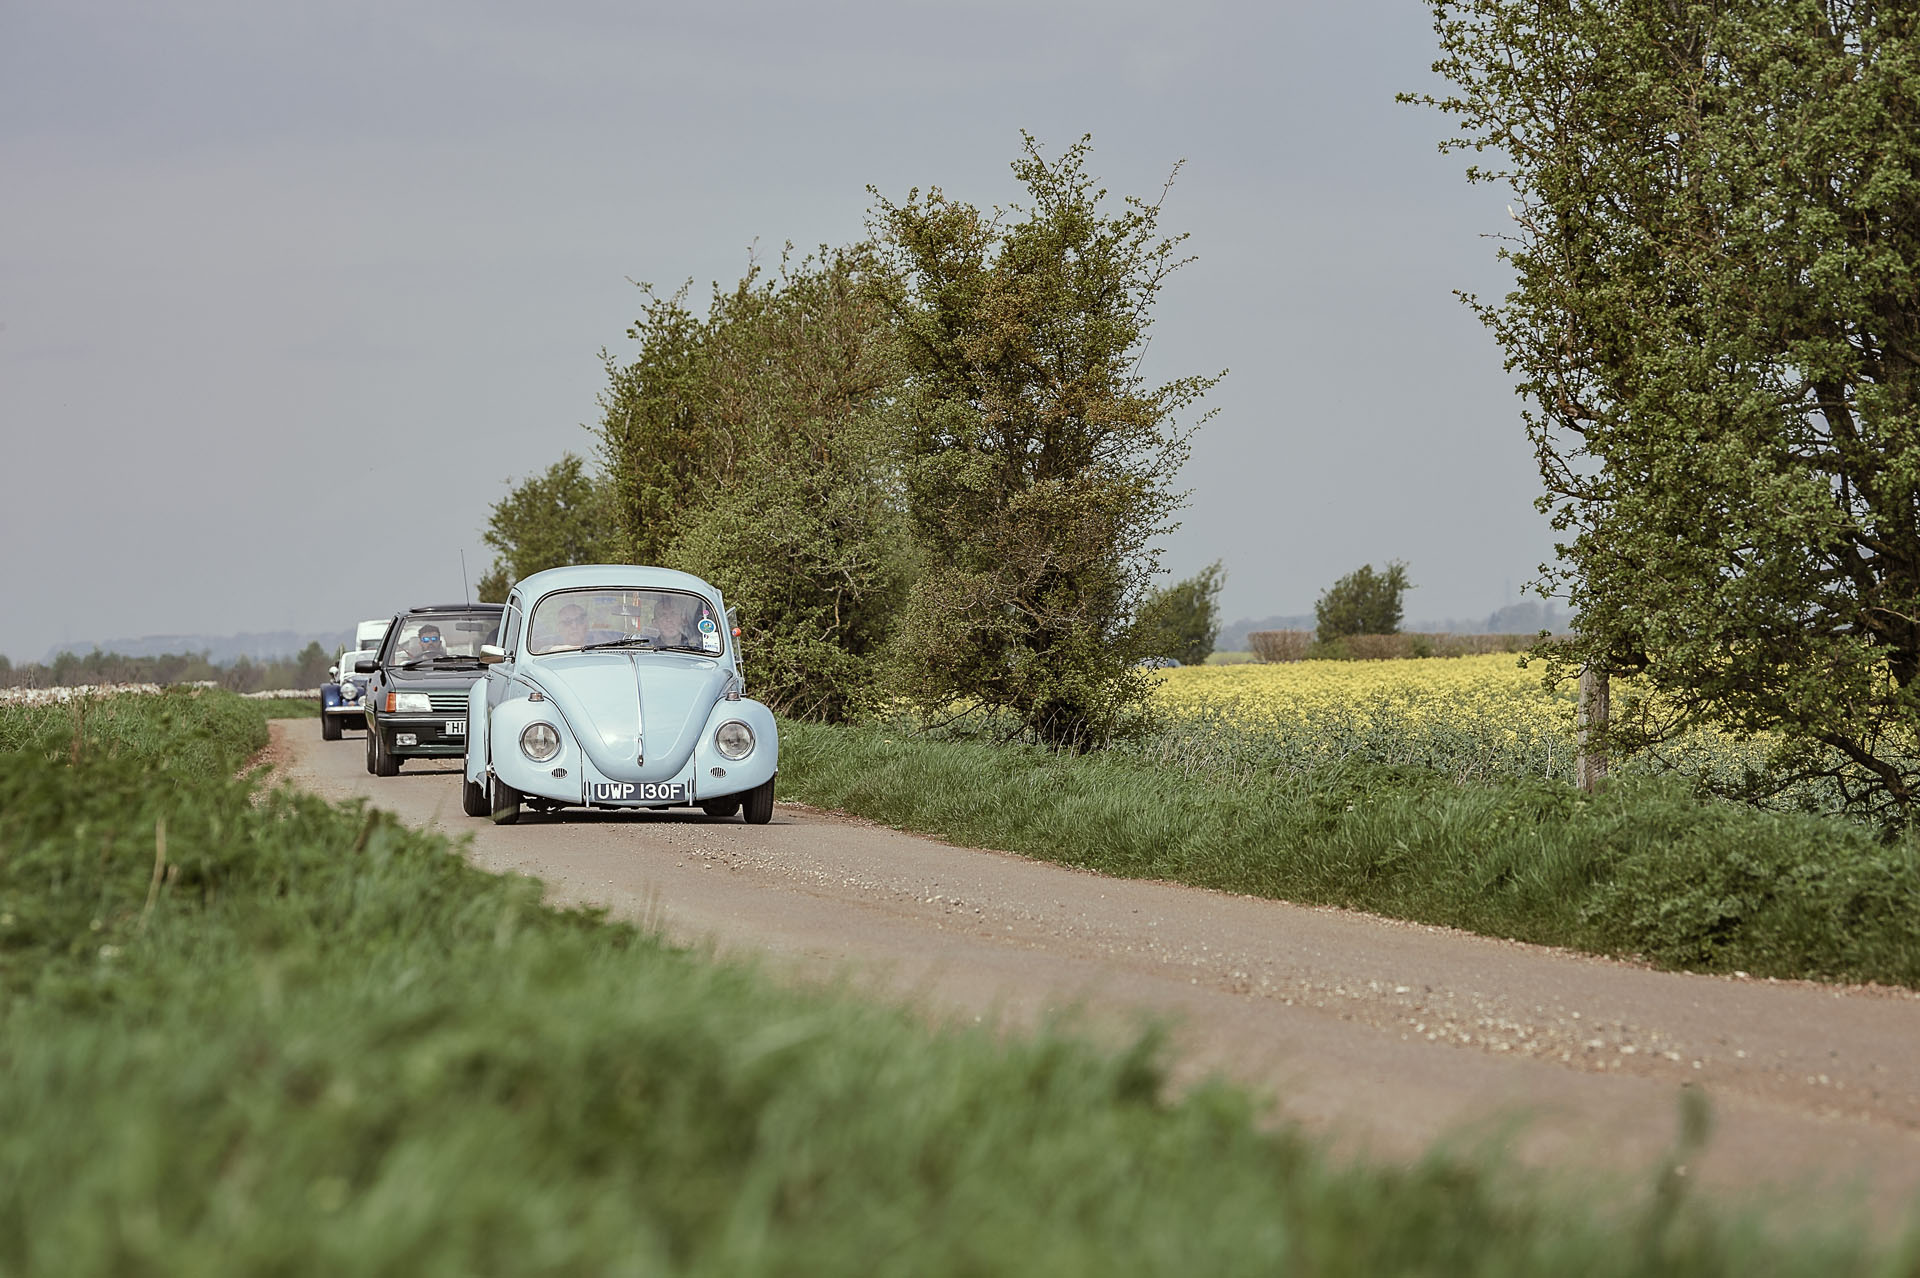 Classic convoy led by blue Volkswagen